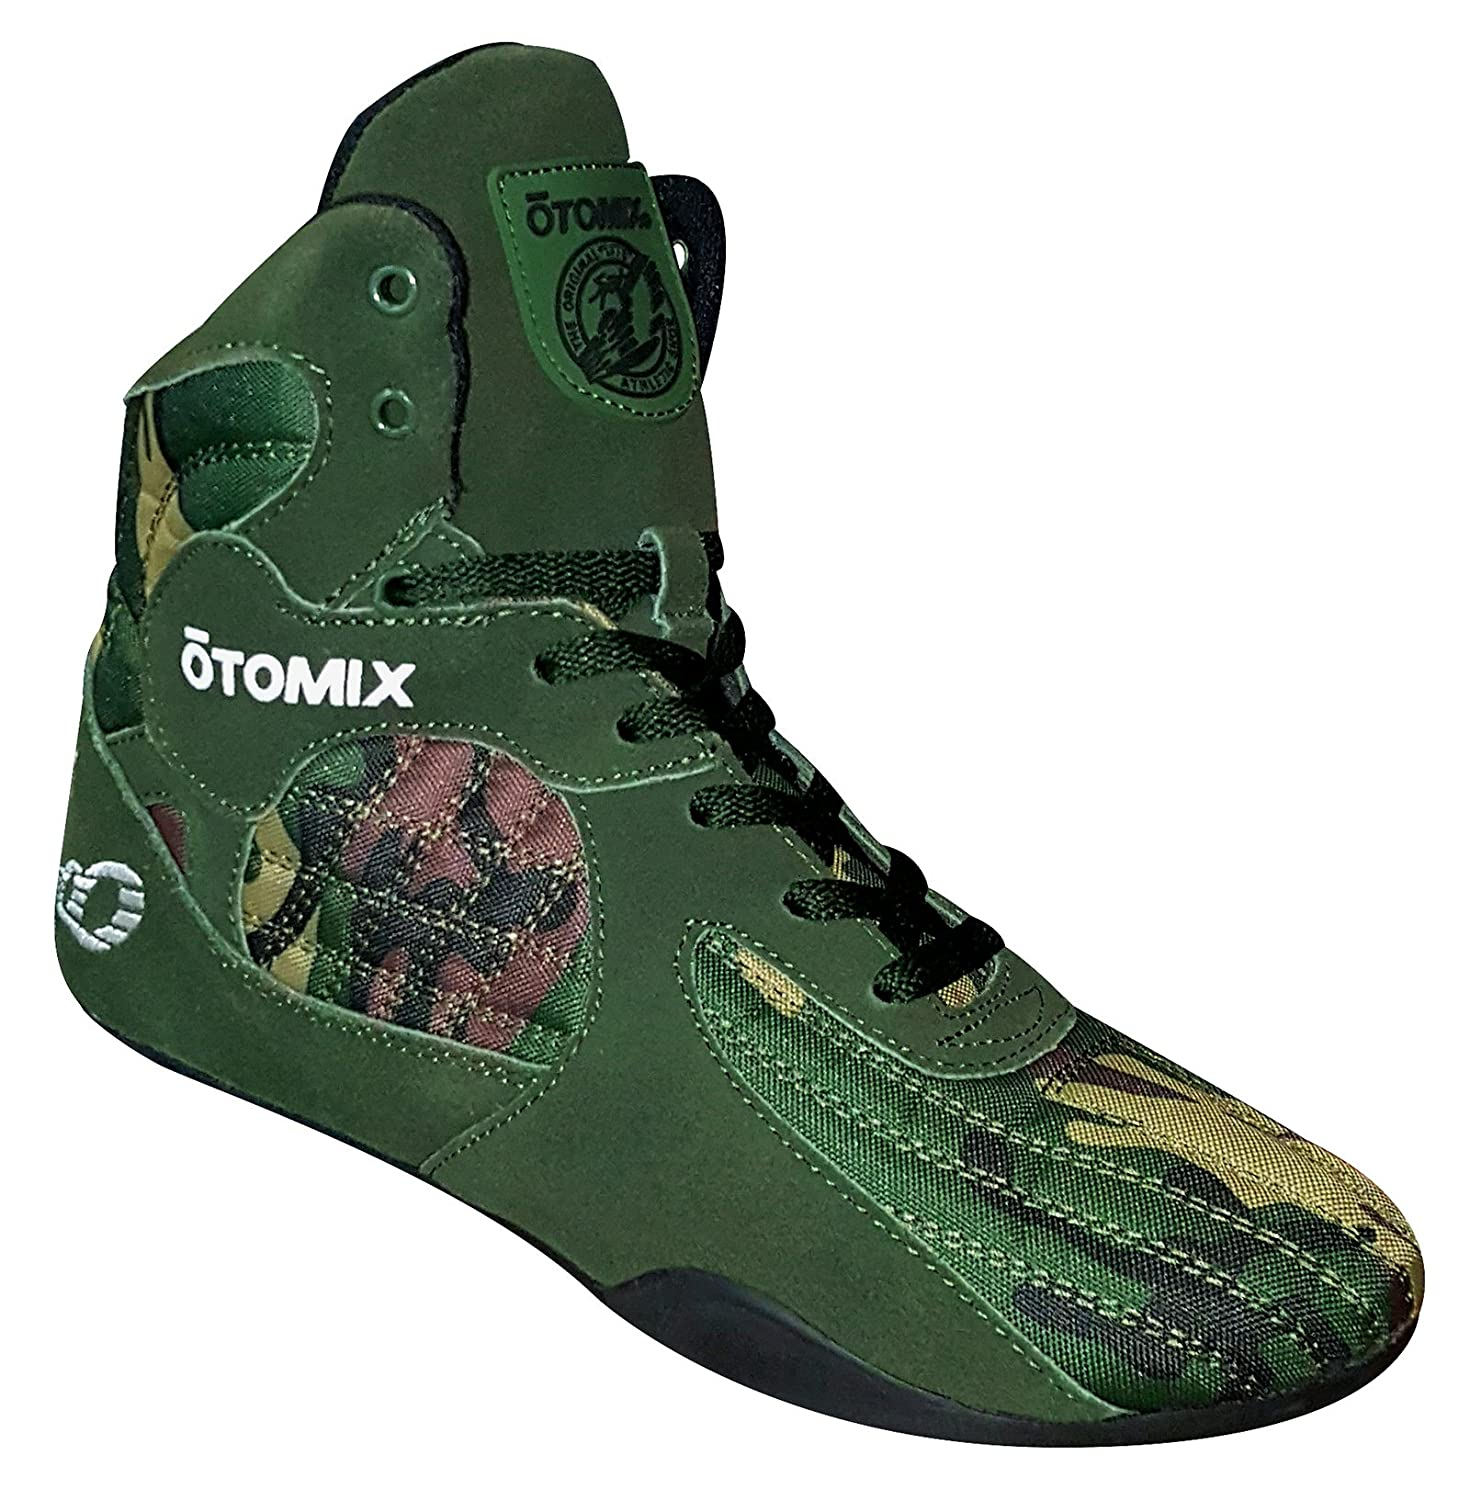 Otomix Stingray Escape Bodybuilding Weightlifting MMA Boxing Shoe B00ABAVSDC 13 M US|Camo